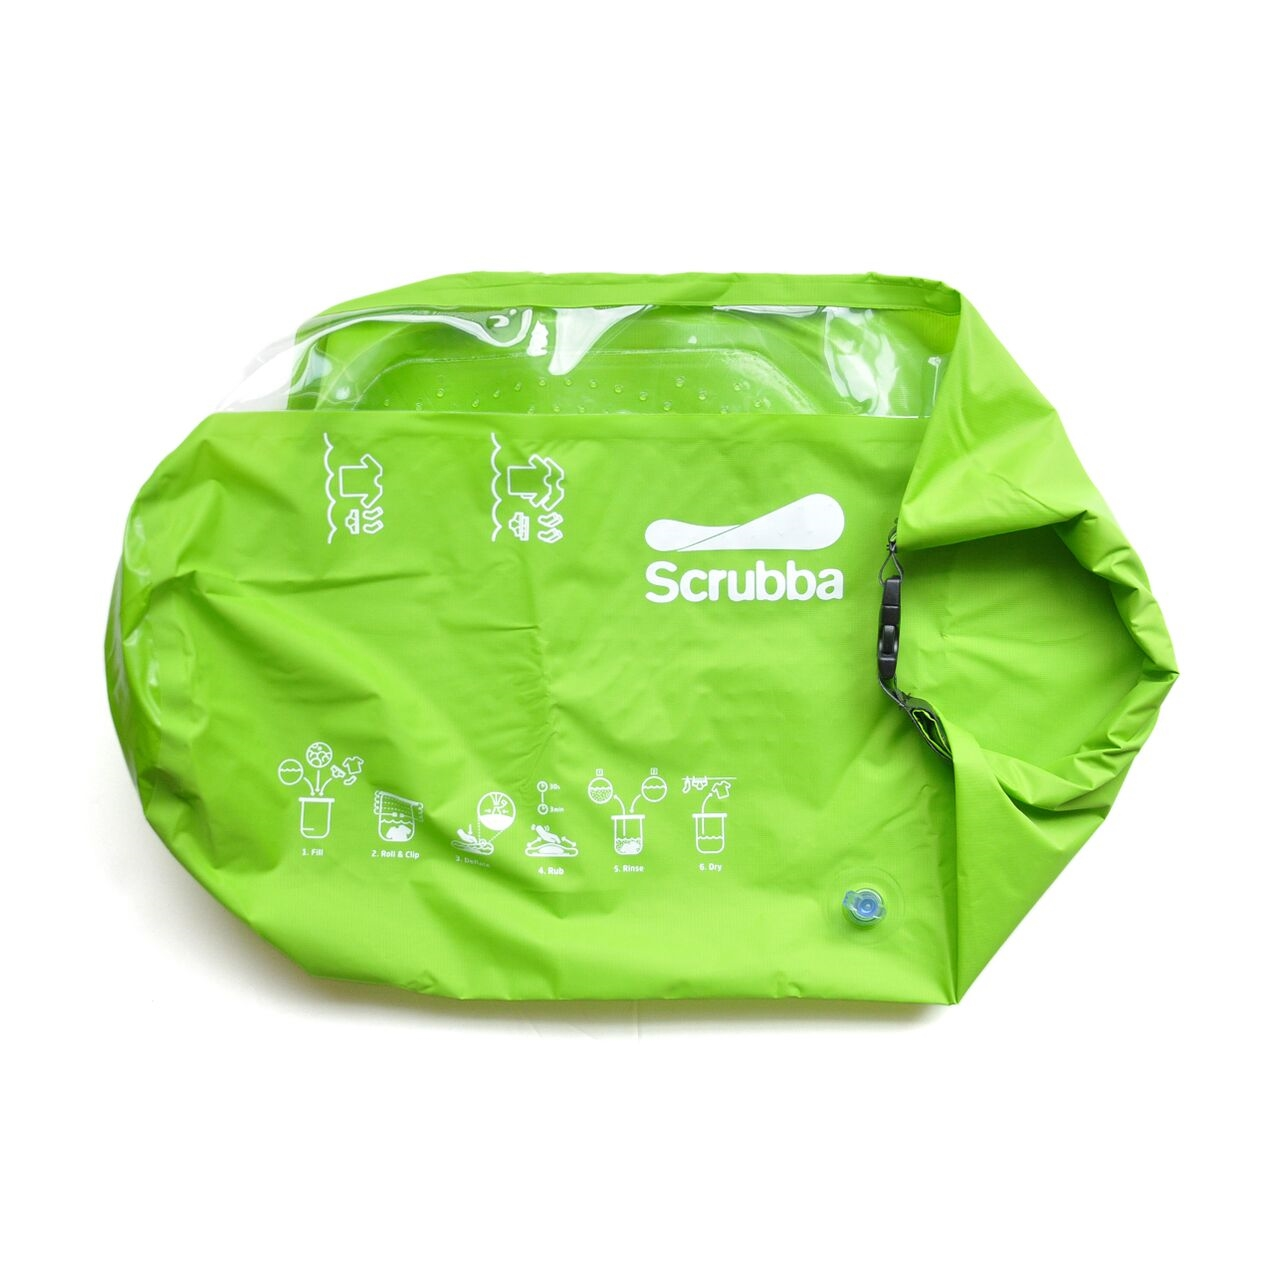 手動洗濯機 Scrubba wash bag